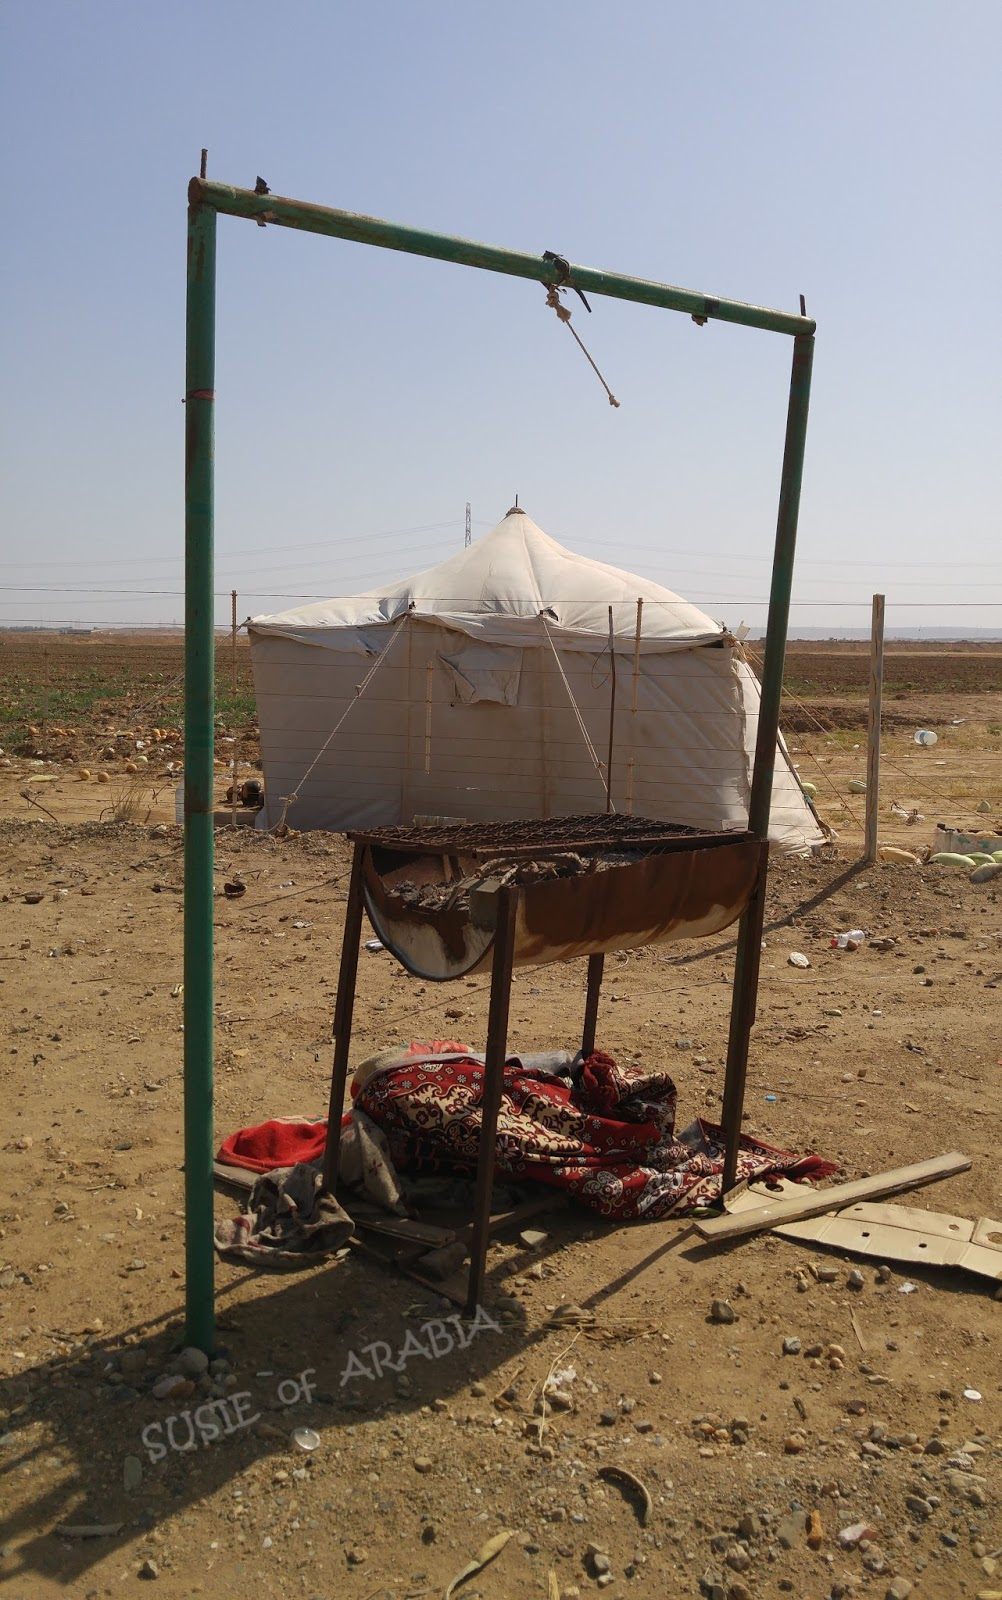 SUSIE of ARABIA: Along the Road from Jeddah to Yanbu